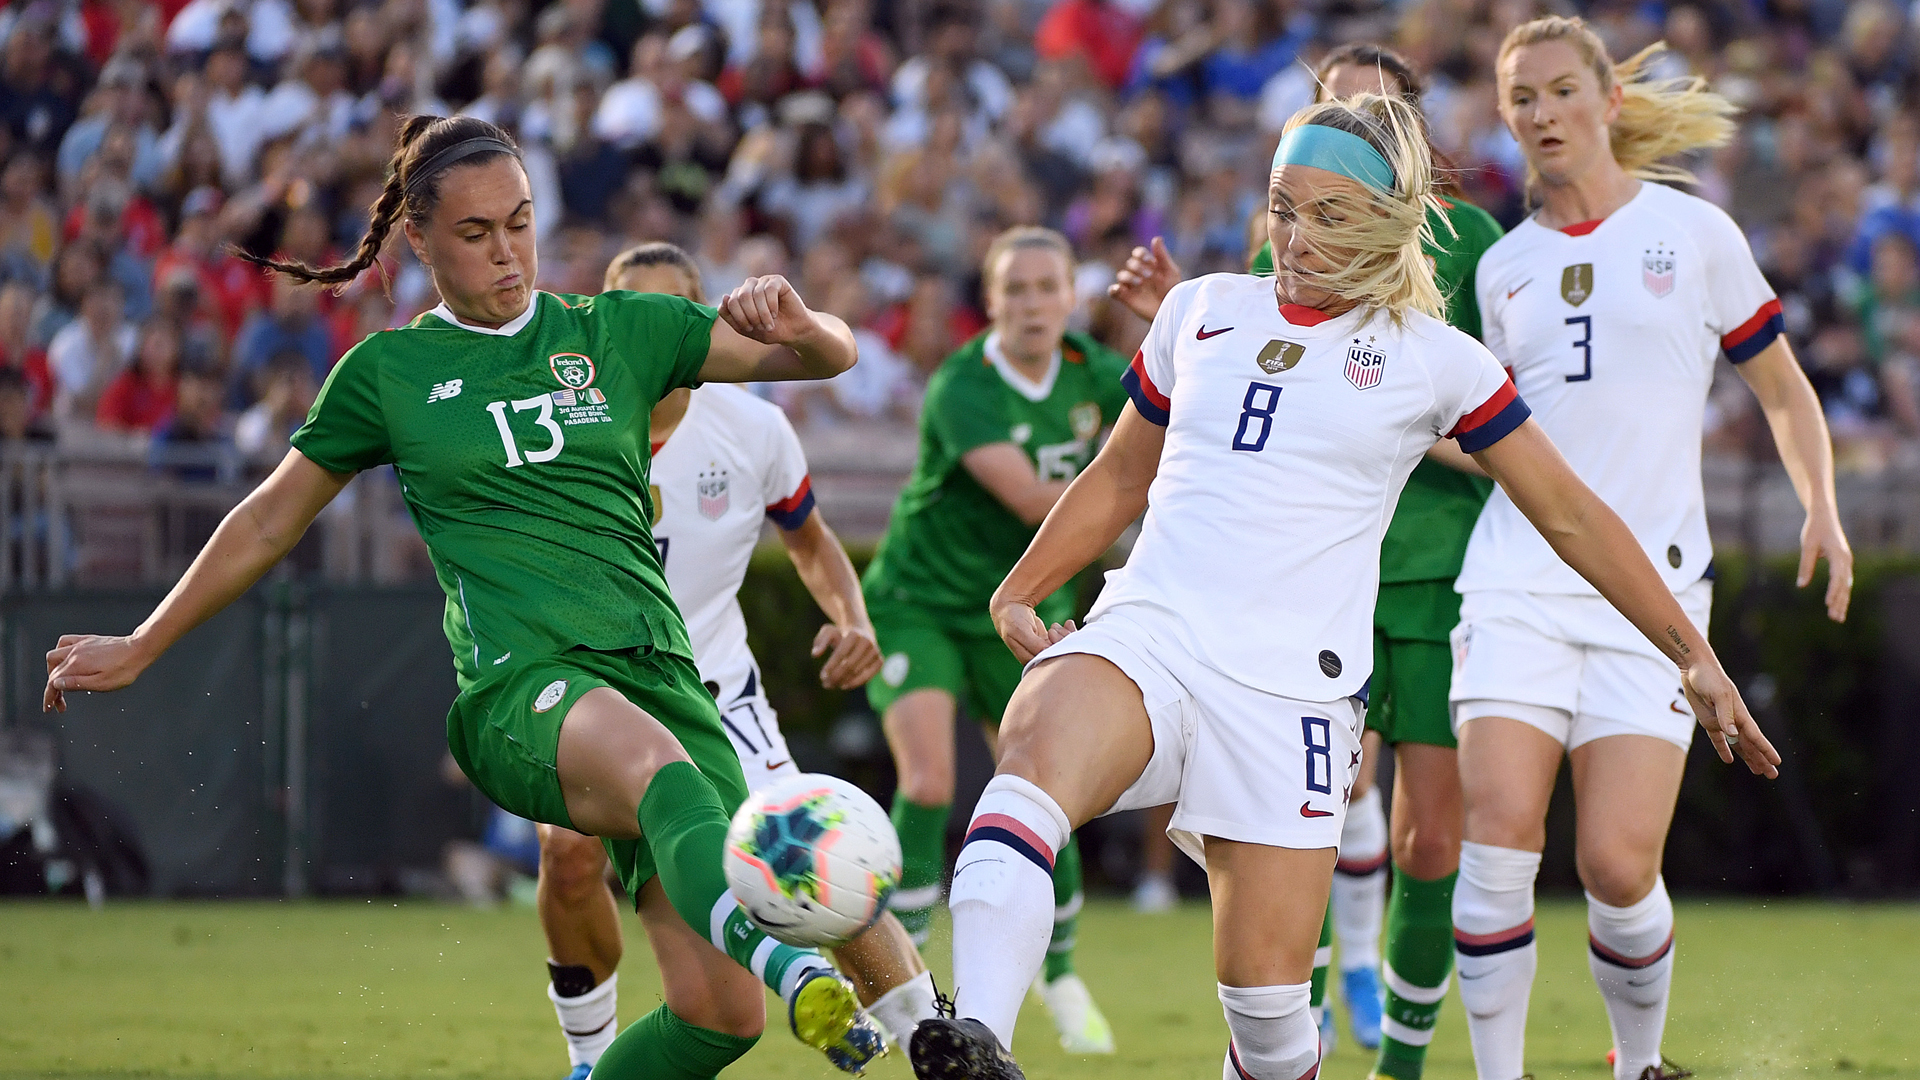 Julie Ertz #8 of the United States and Jess Gargan #13 of the Republic of Ireland go after a ball during the first half of the first game of the USWNT Victory Tour at Rose Bowl on August 03, 2019 in Pasadena, California. (Credit: Harry How/Getty Images)